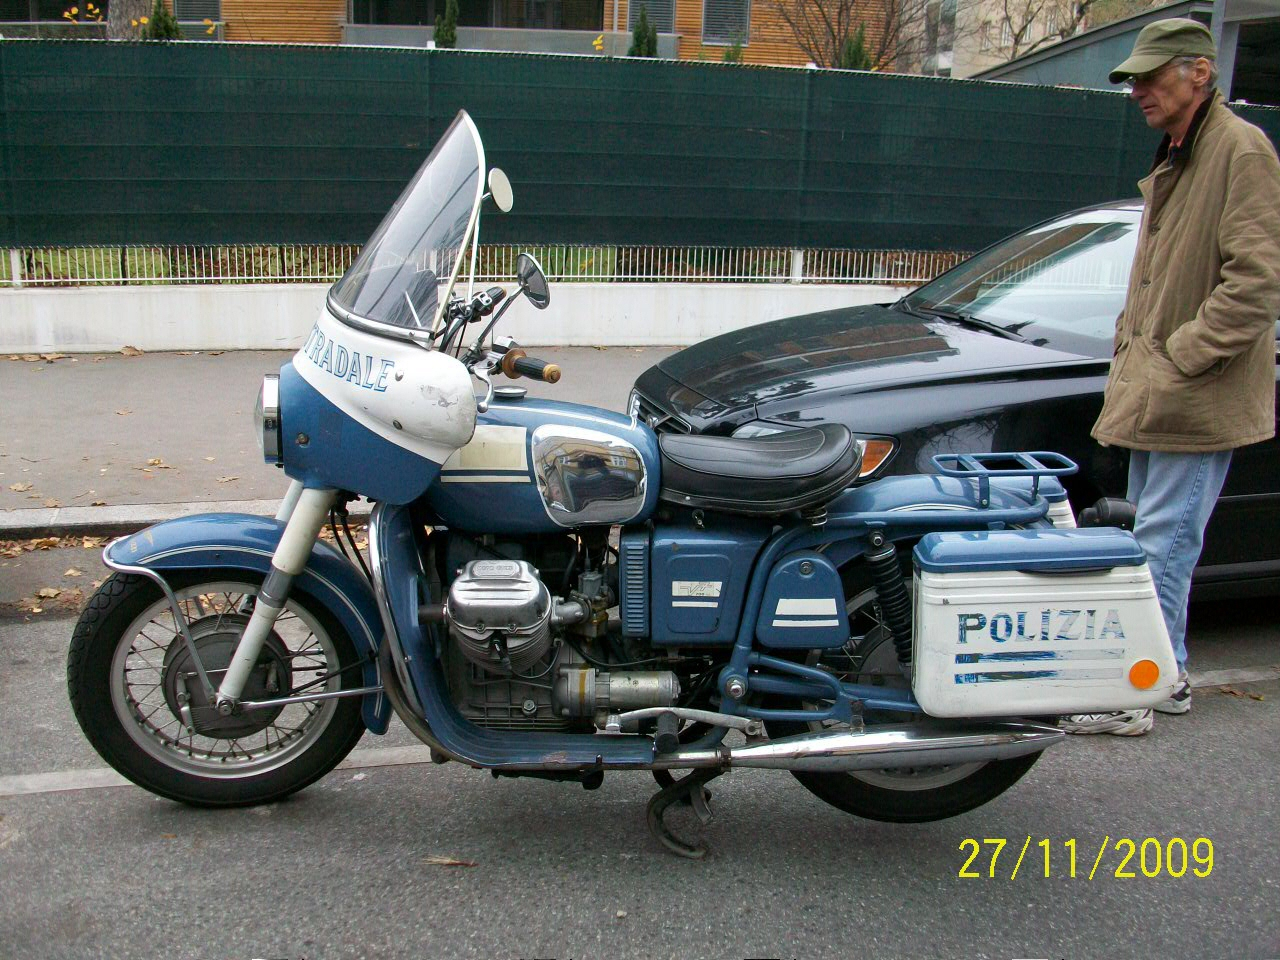 V700 Polizia Stradale owned by Wiener Wilhelm from Vienna, Austria.